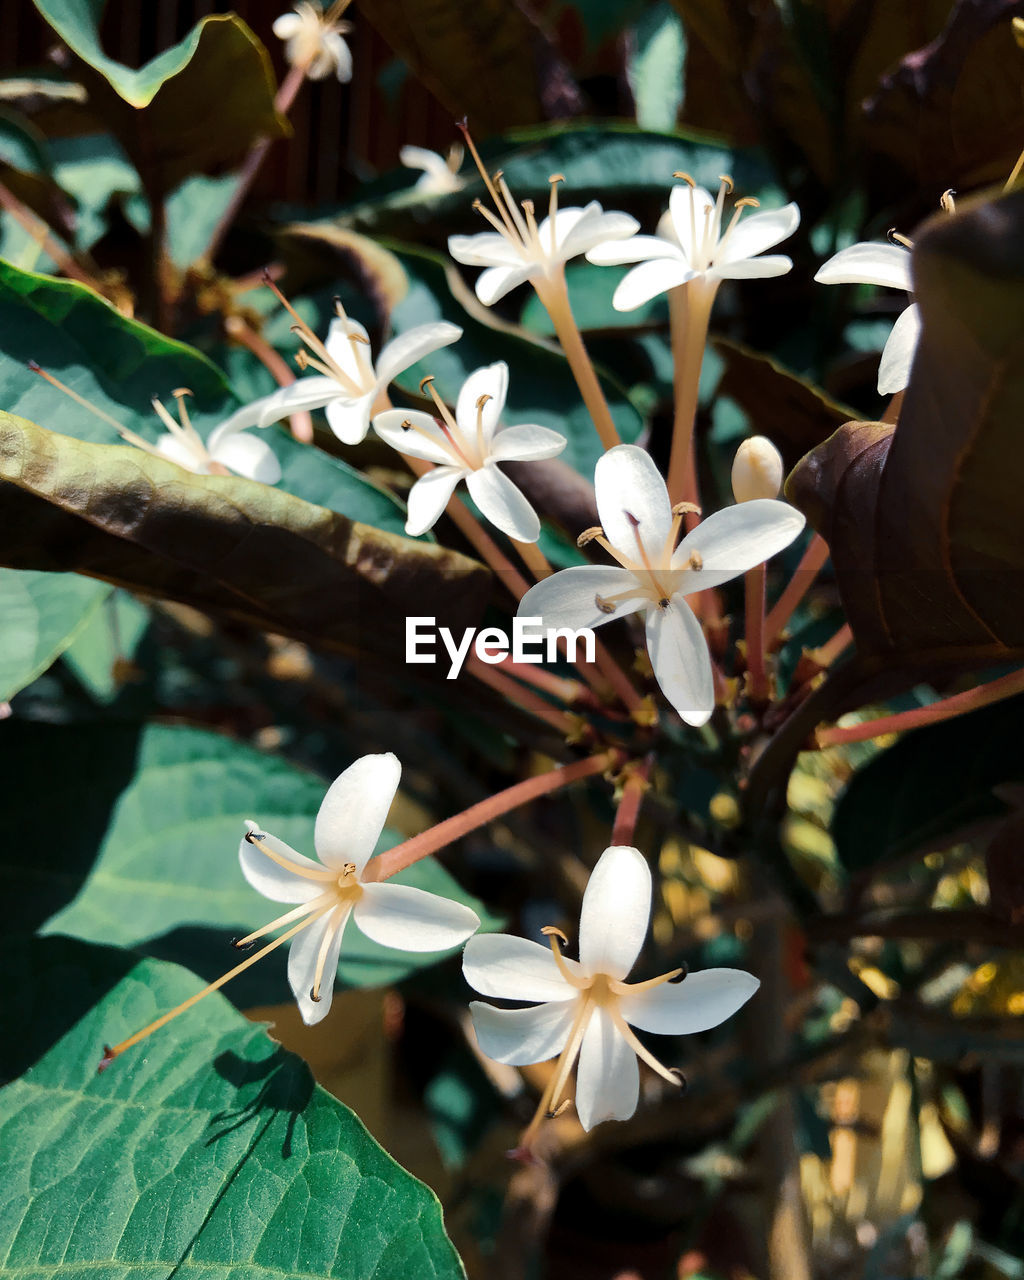 flower, flowering plant, growth, plant, close-up, leaf, freshness, fragility, beauty in nature, plant part, vulnerability, focus on foreground, nature, day, petal, flower head, inflorescence, white color, outdoors, selective focus